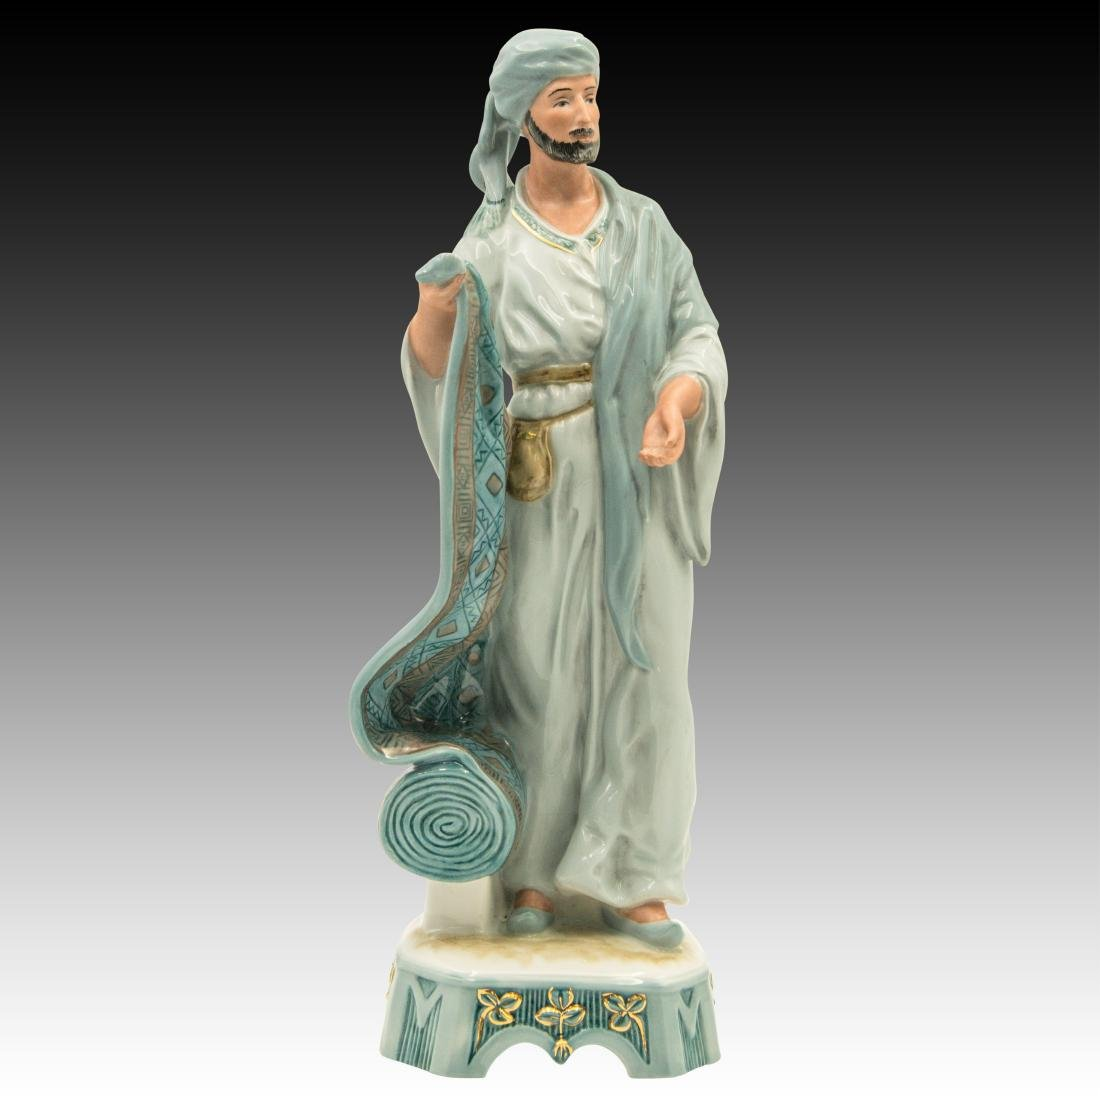 Royal Dux Middle Eastern Street Vendors Figurines - 7